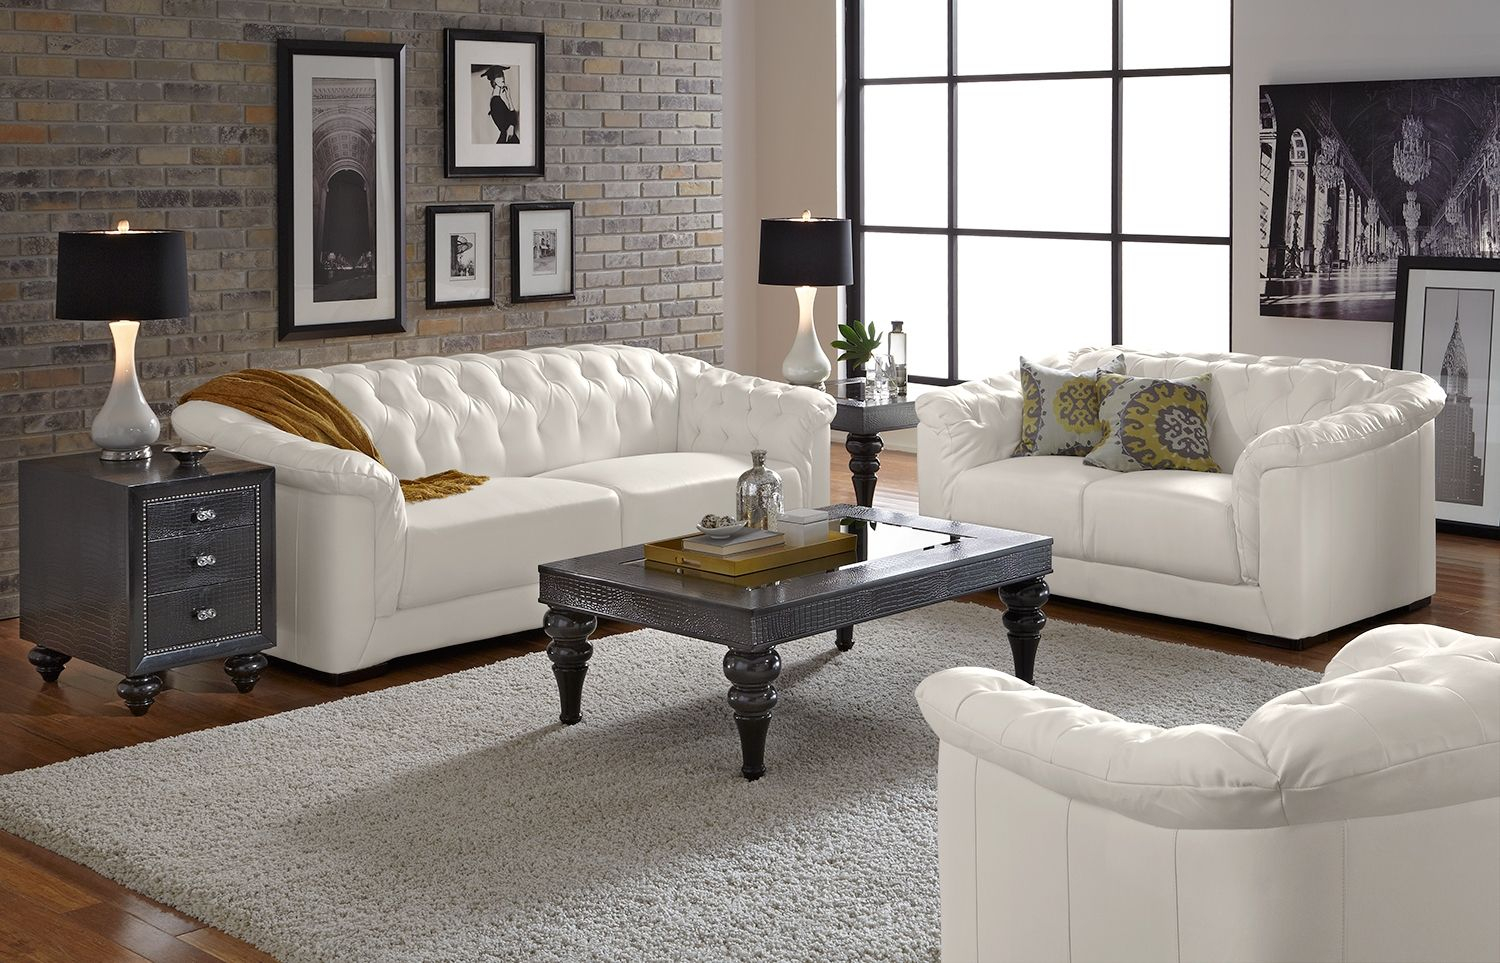 21 Living Room Tufted Leather Sofa Designs Ideas For The intended for 12 Clever Designs of How to Improve White Leather Living Room Sets